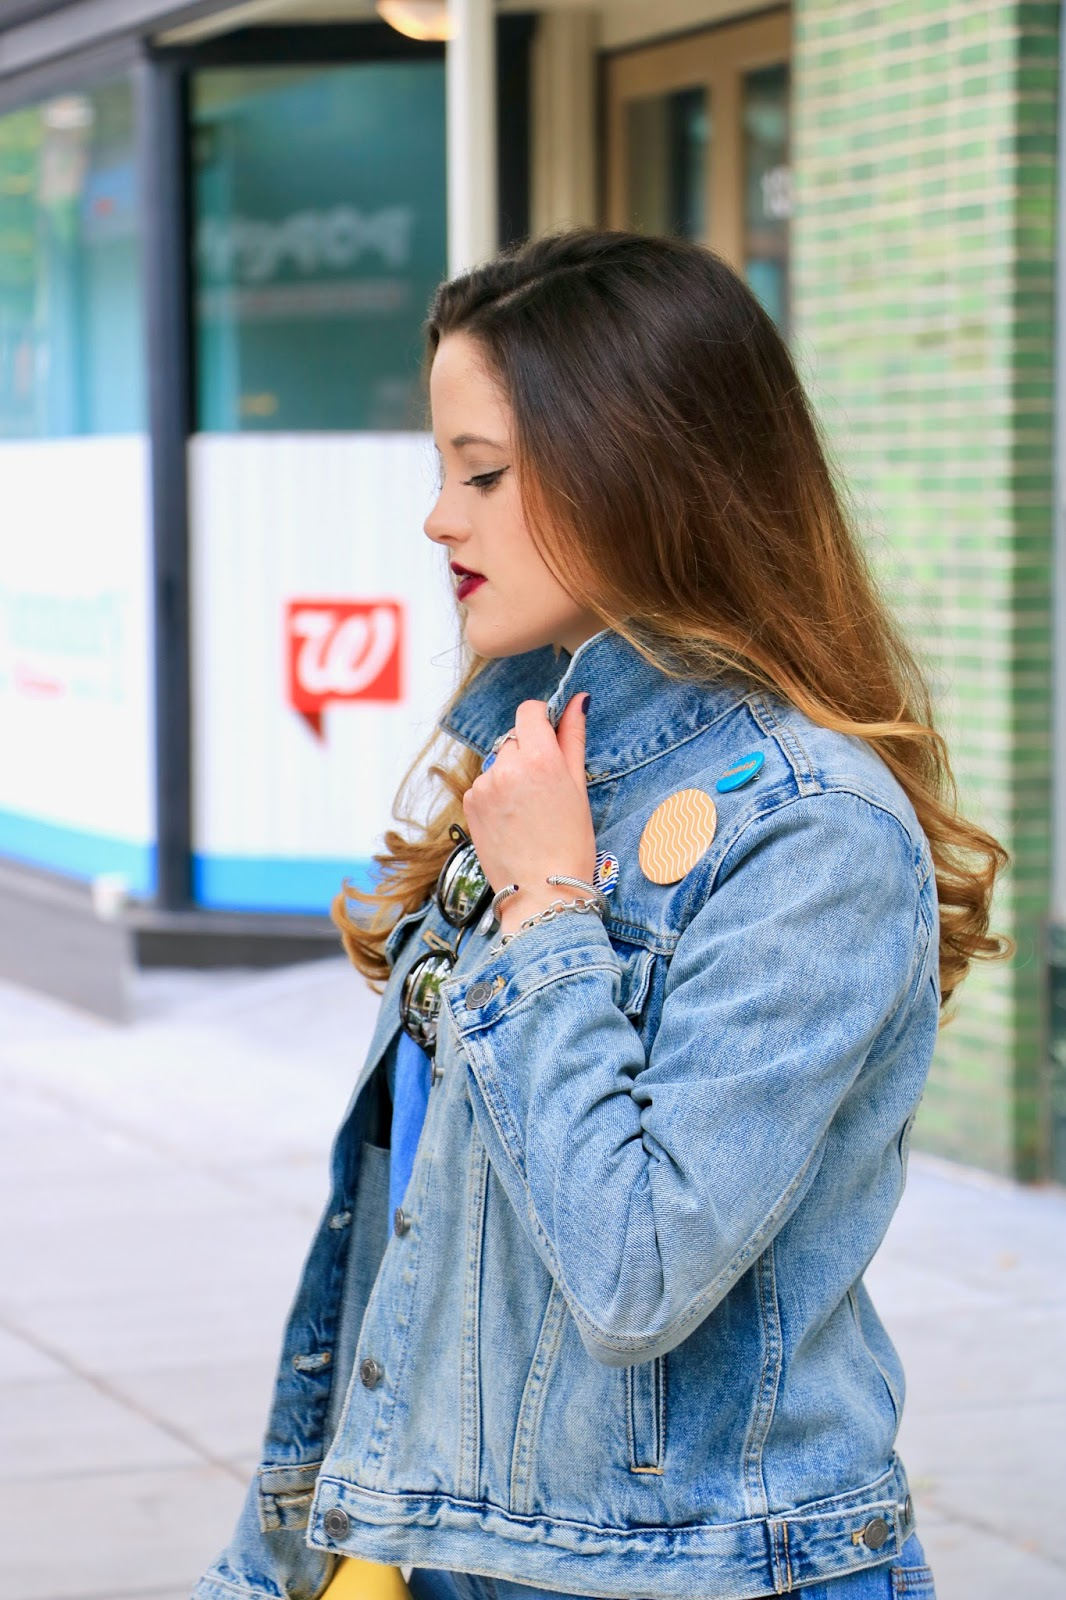 Nyc fashion blogger Kathleen Harper shows how to wear a jean jacket